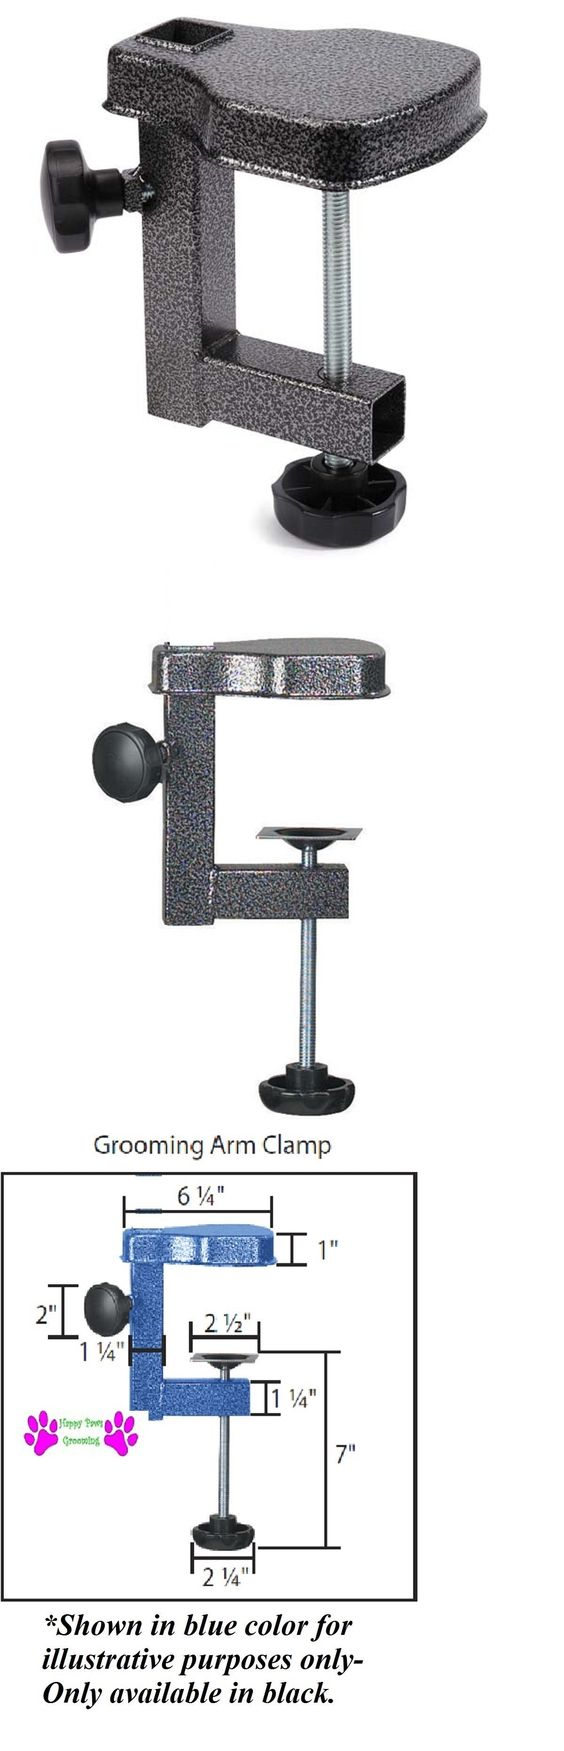 Grooming Tables 146241: Me Large Pro Heavy Duty Adjustable Clamp ...